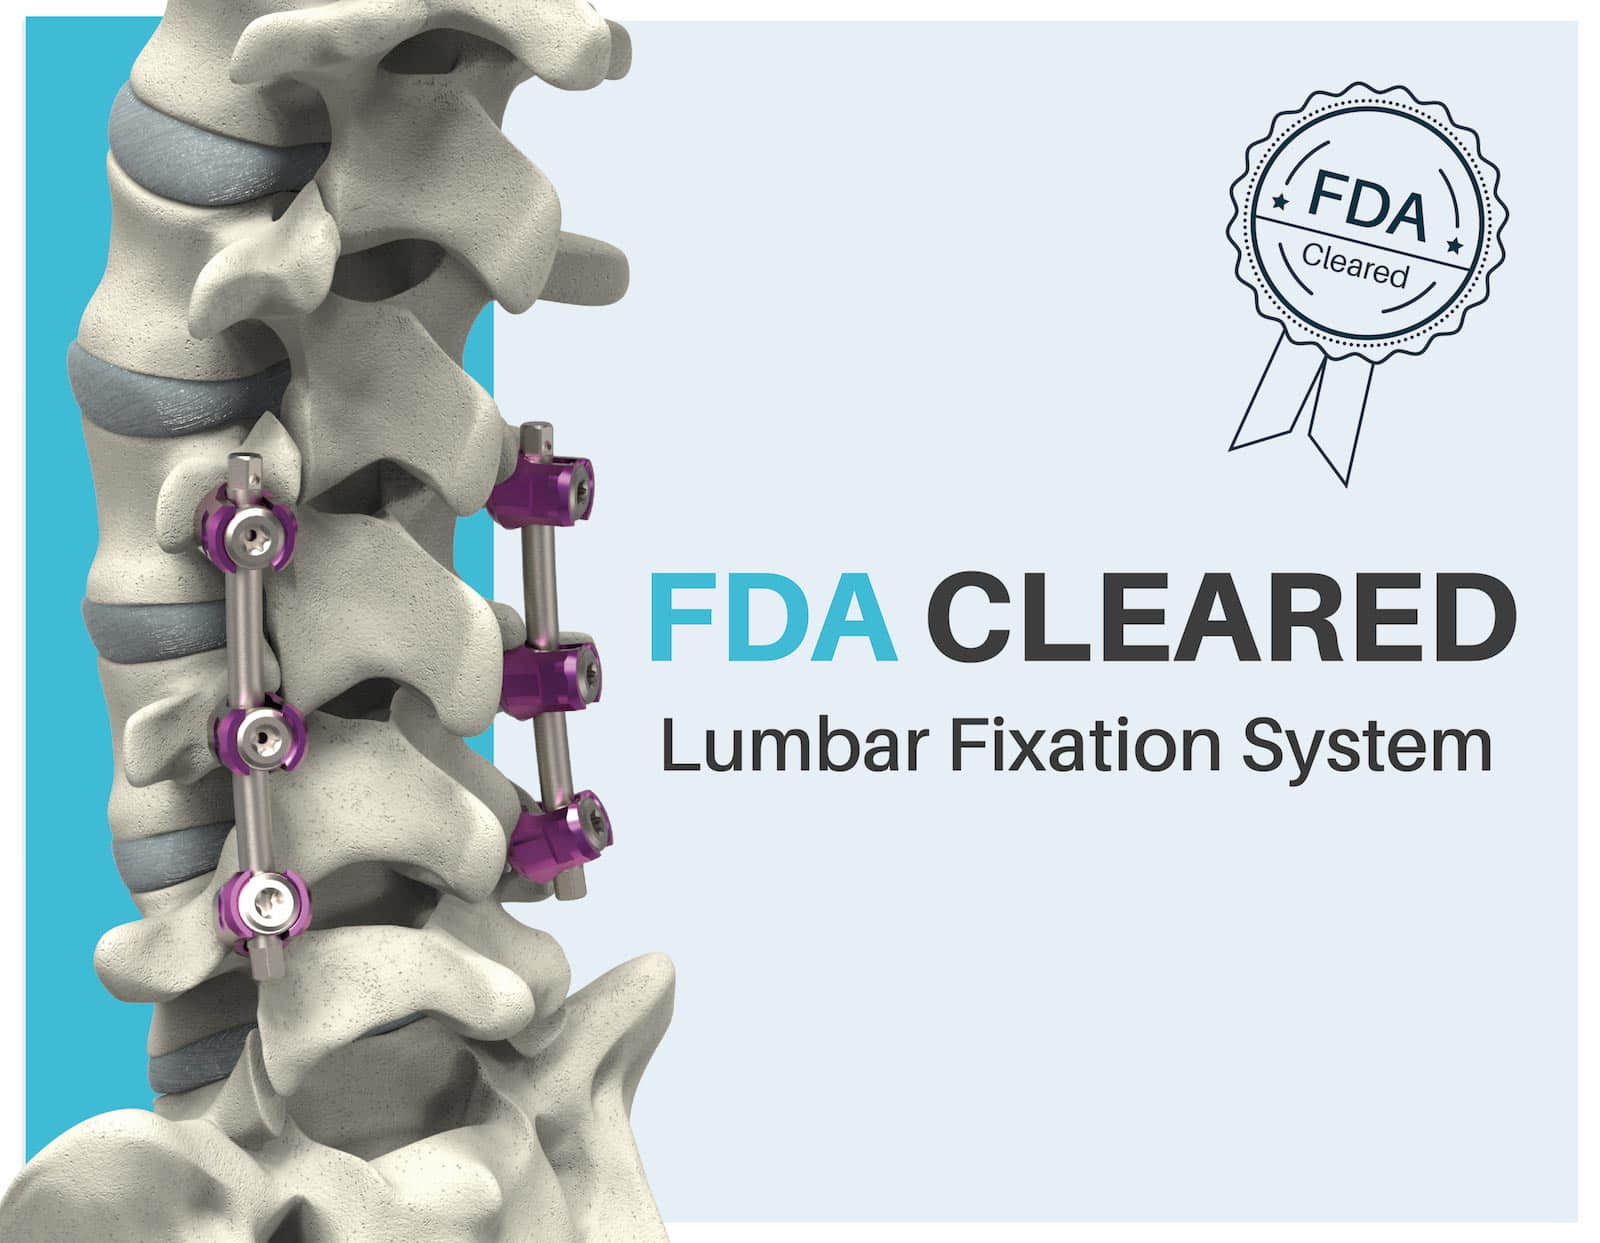 FDA Approves Lumbar Fixation System